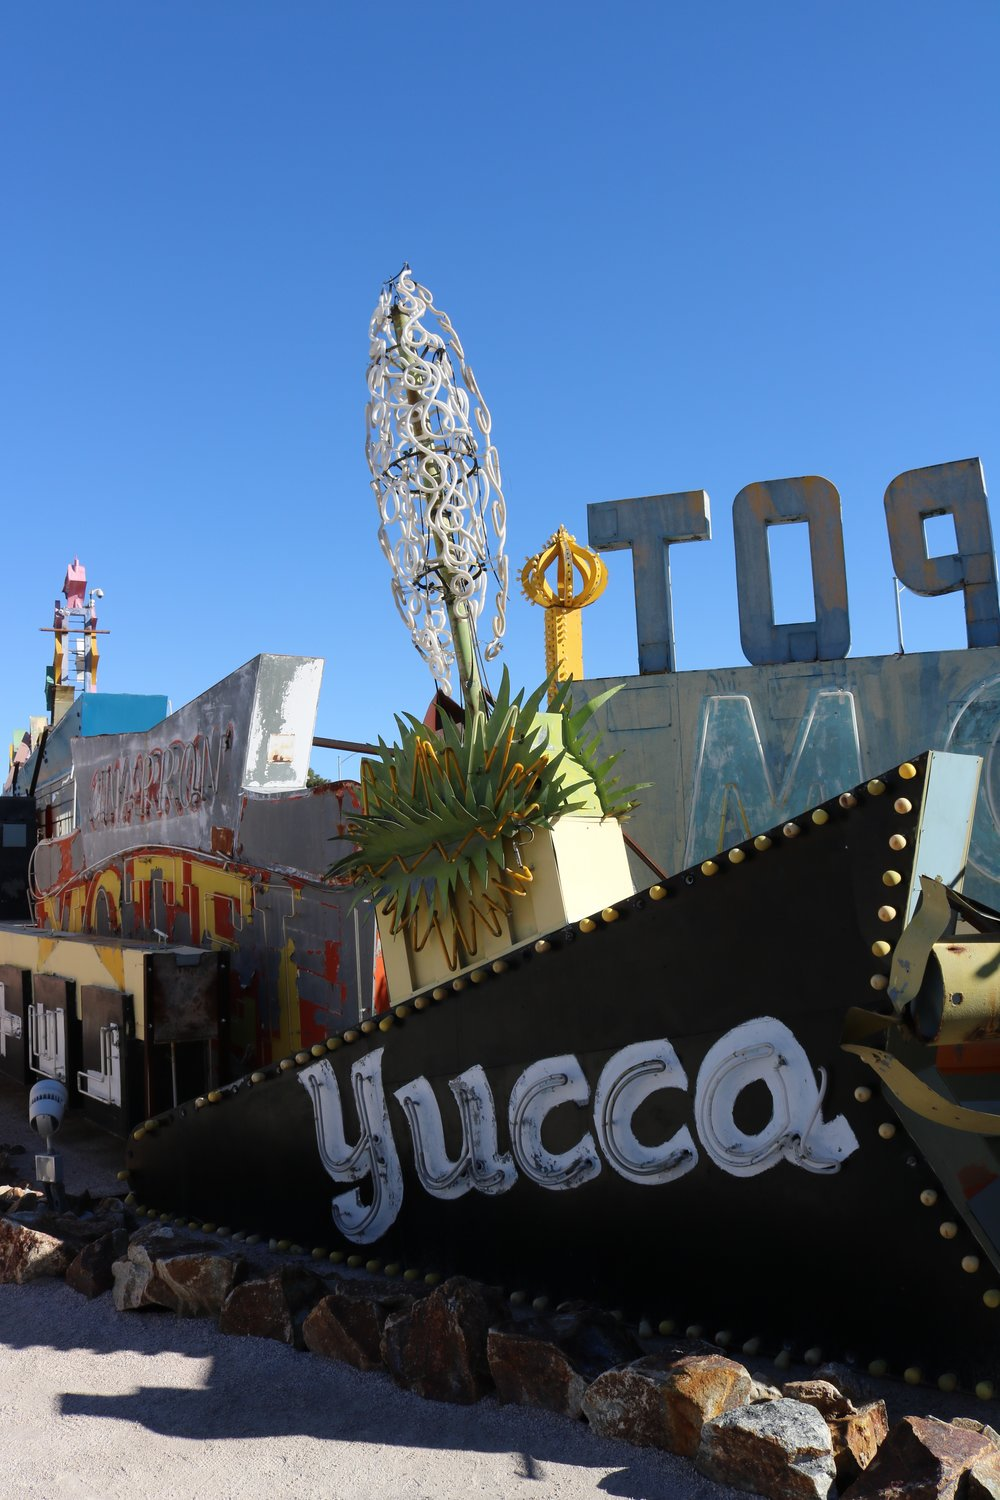 The Yucca Hotel Sign at the Neon Boneyard, is next level neon craftsmanship.  Each one of the pieces in the plant part of the sign were individually hand crafted.  I WISH I could see what this sign looks like lit up, I bet it's amazing.